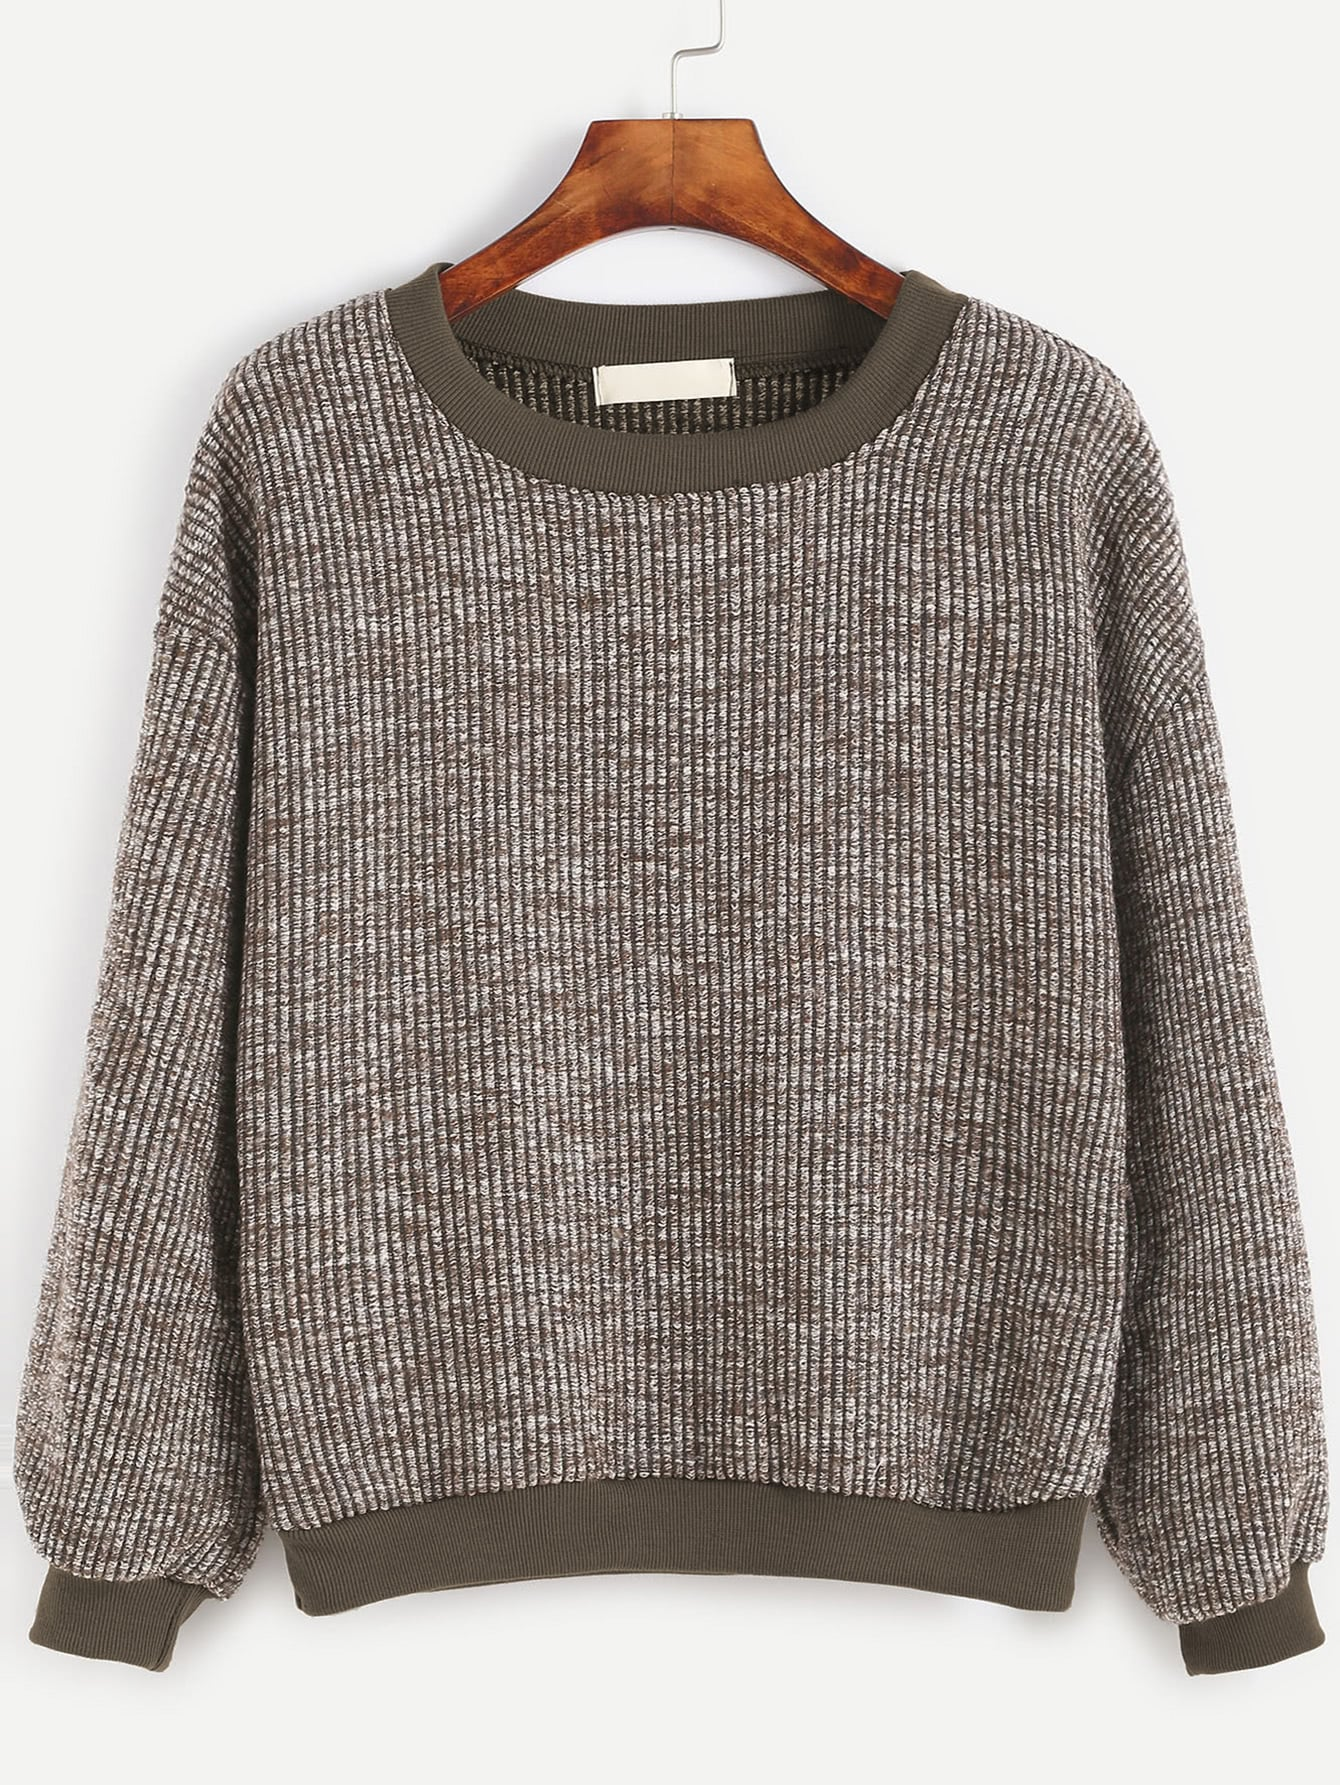 Contrast Trim Ribbed Sweatshirt dark grey ribbed trim drop shoulder lace up sweatshirt